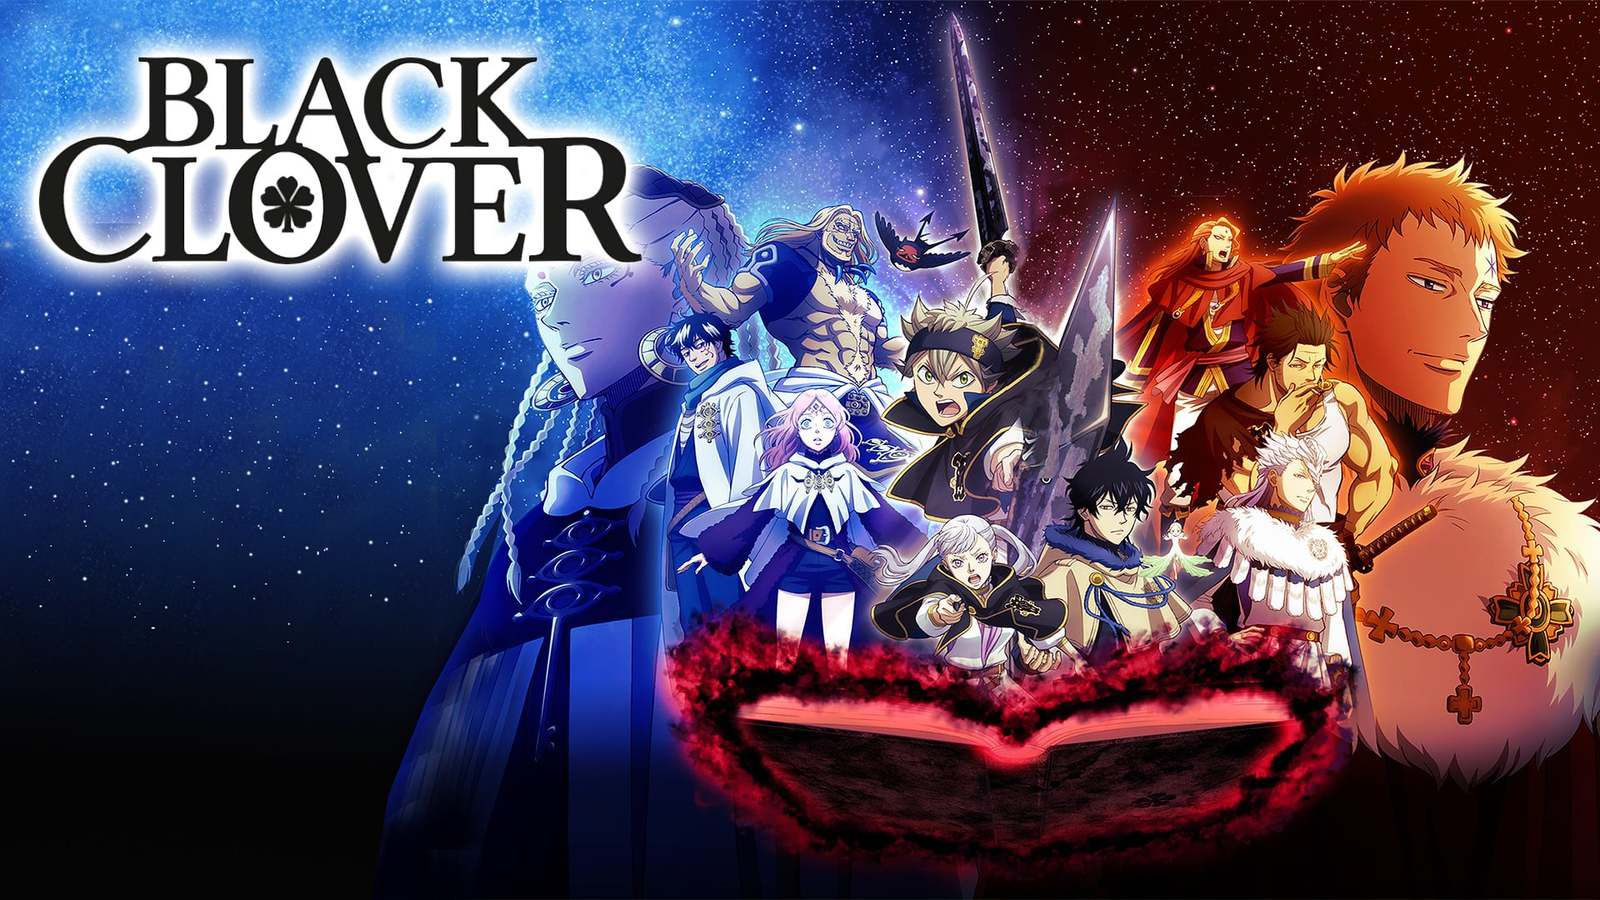 Black Clover Episode 158 Watch Online with English Subtitles